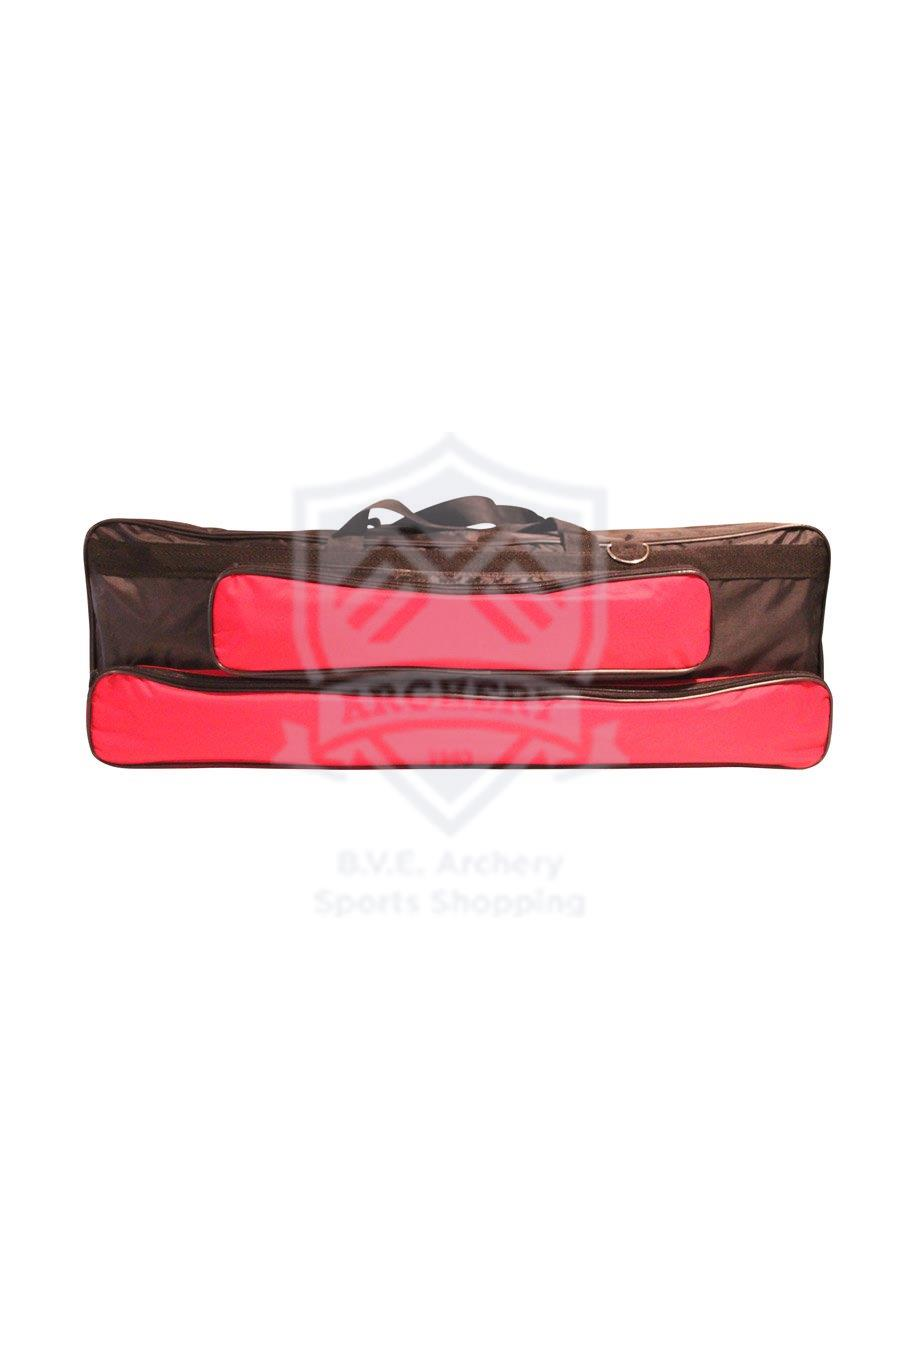 ASES RECURVE BOW CASE